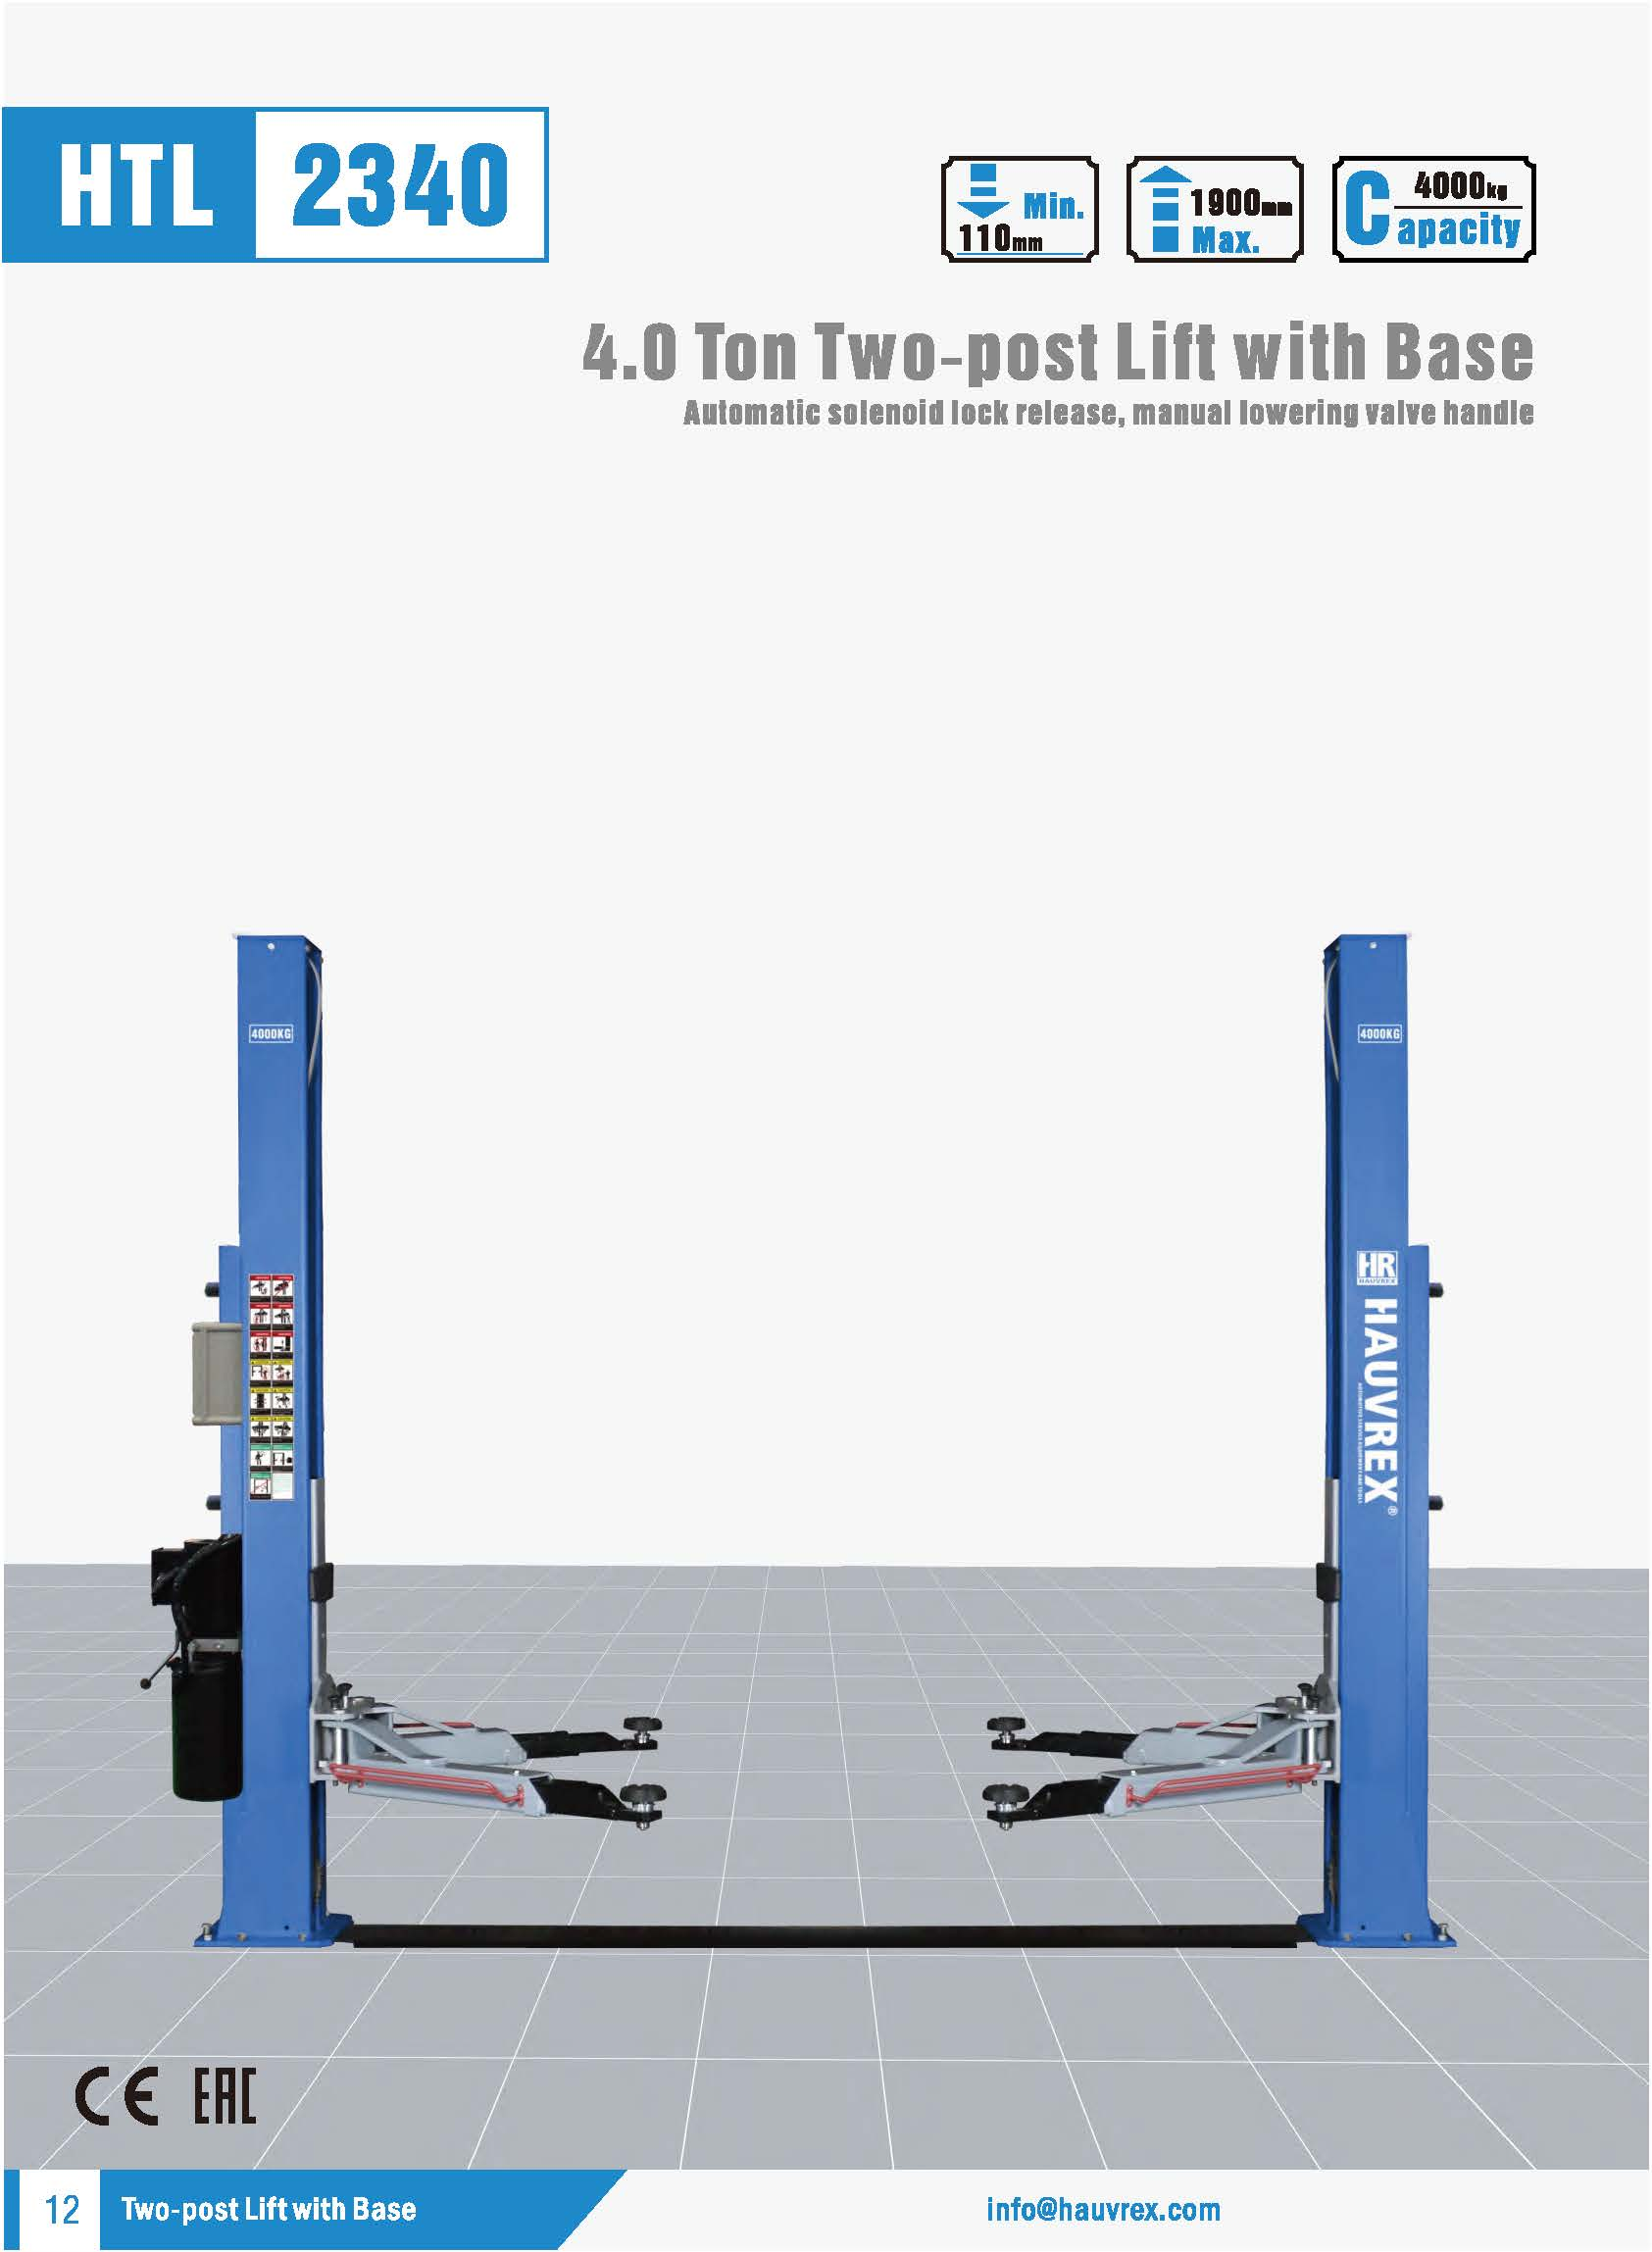 HTL2340 Two-post Lift